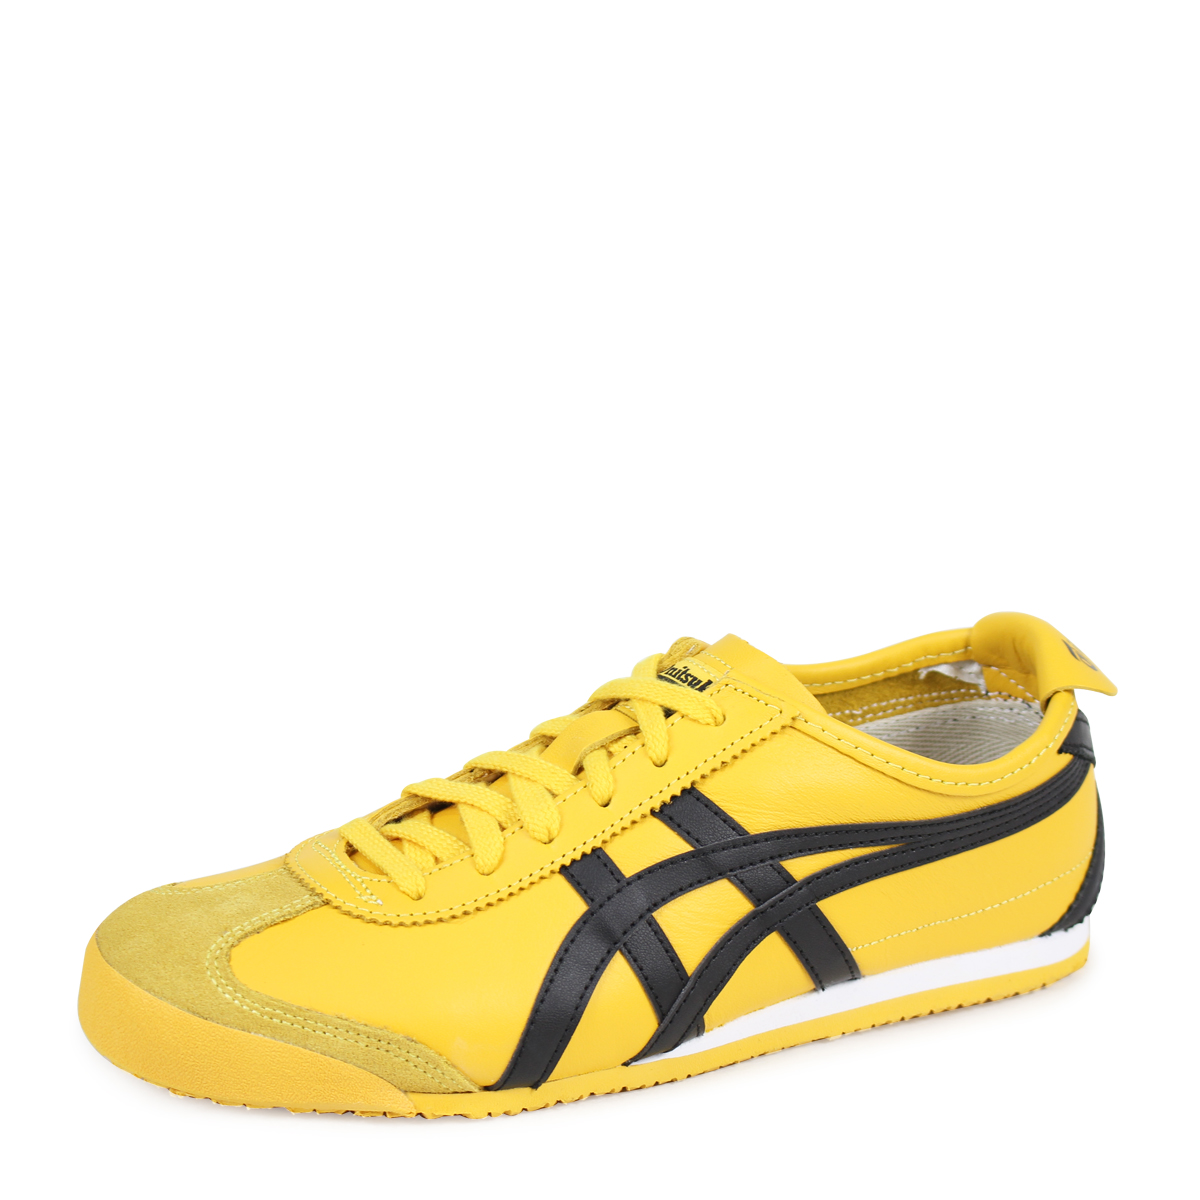 sports shoes eacdb afae0 Onitsuka Tiger MEXICO 66 Onitsuka tiger Mexico 66 men's lady's sneakers  DL202-0490 THL202-0490 yellow [the 4/4 additional arrival] [193]